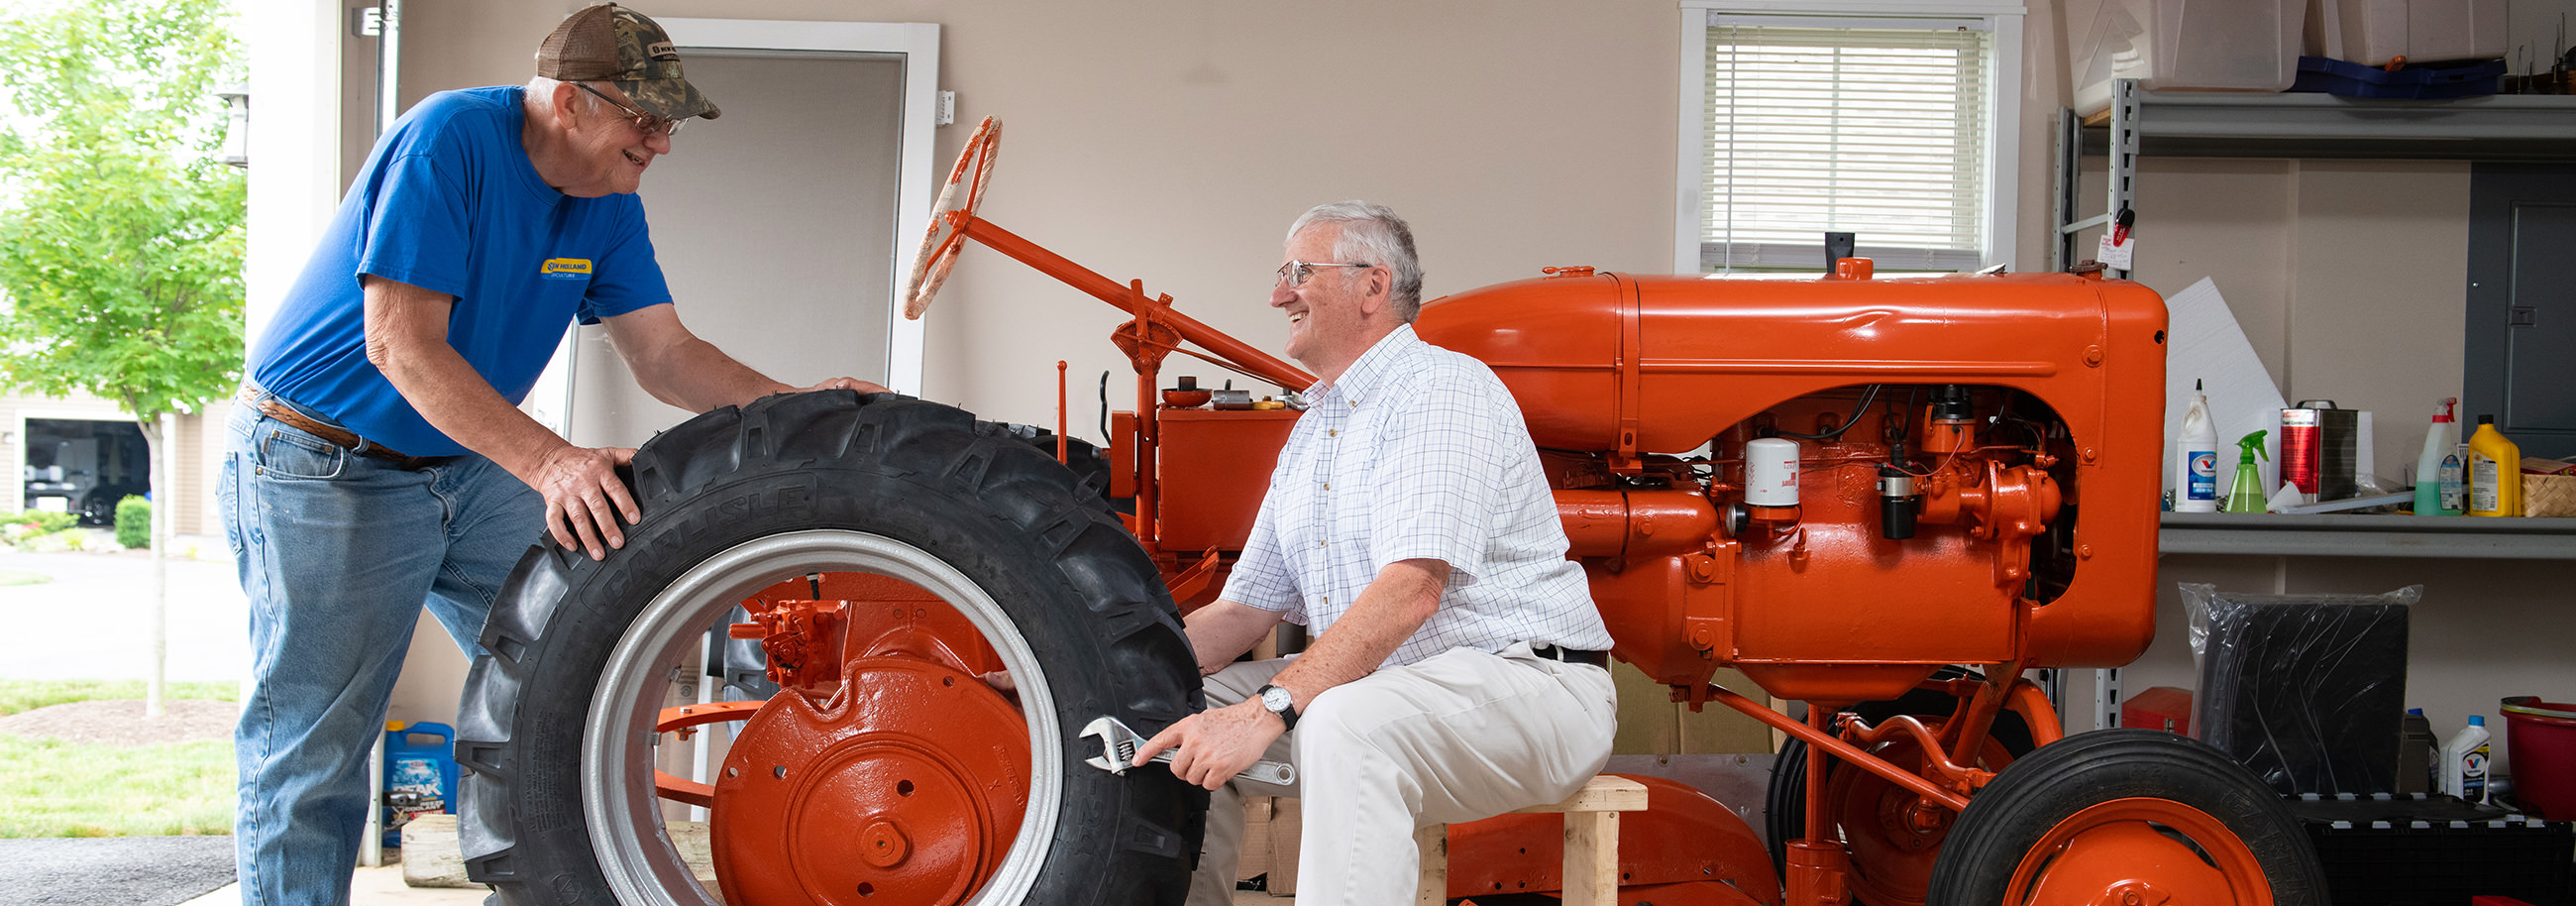 Dale Hostetter and Ed Blakeslee work on Ed's Allis Chalmers tractor in Dale's garage at Sycamore Springs.